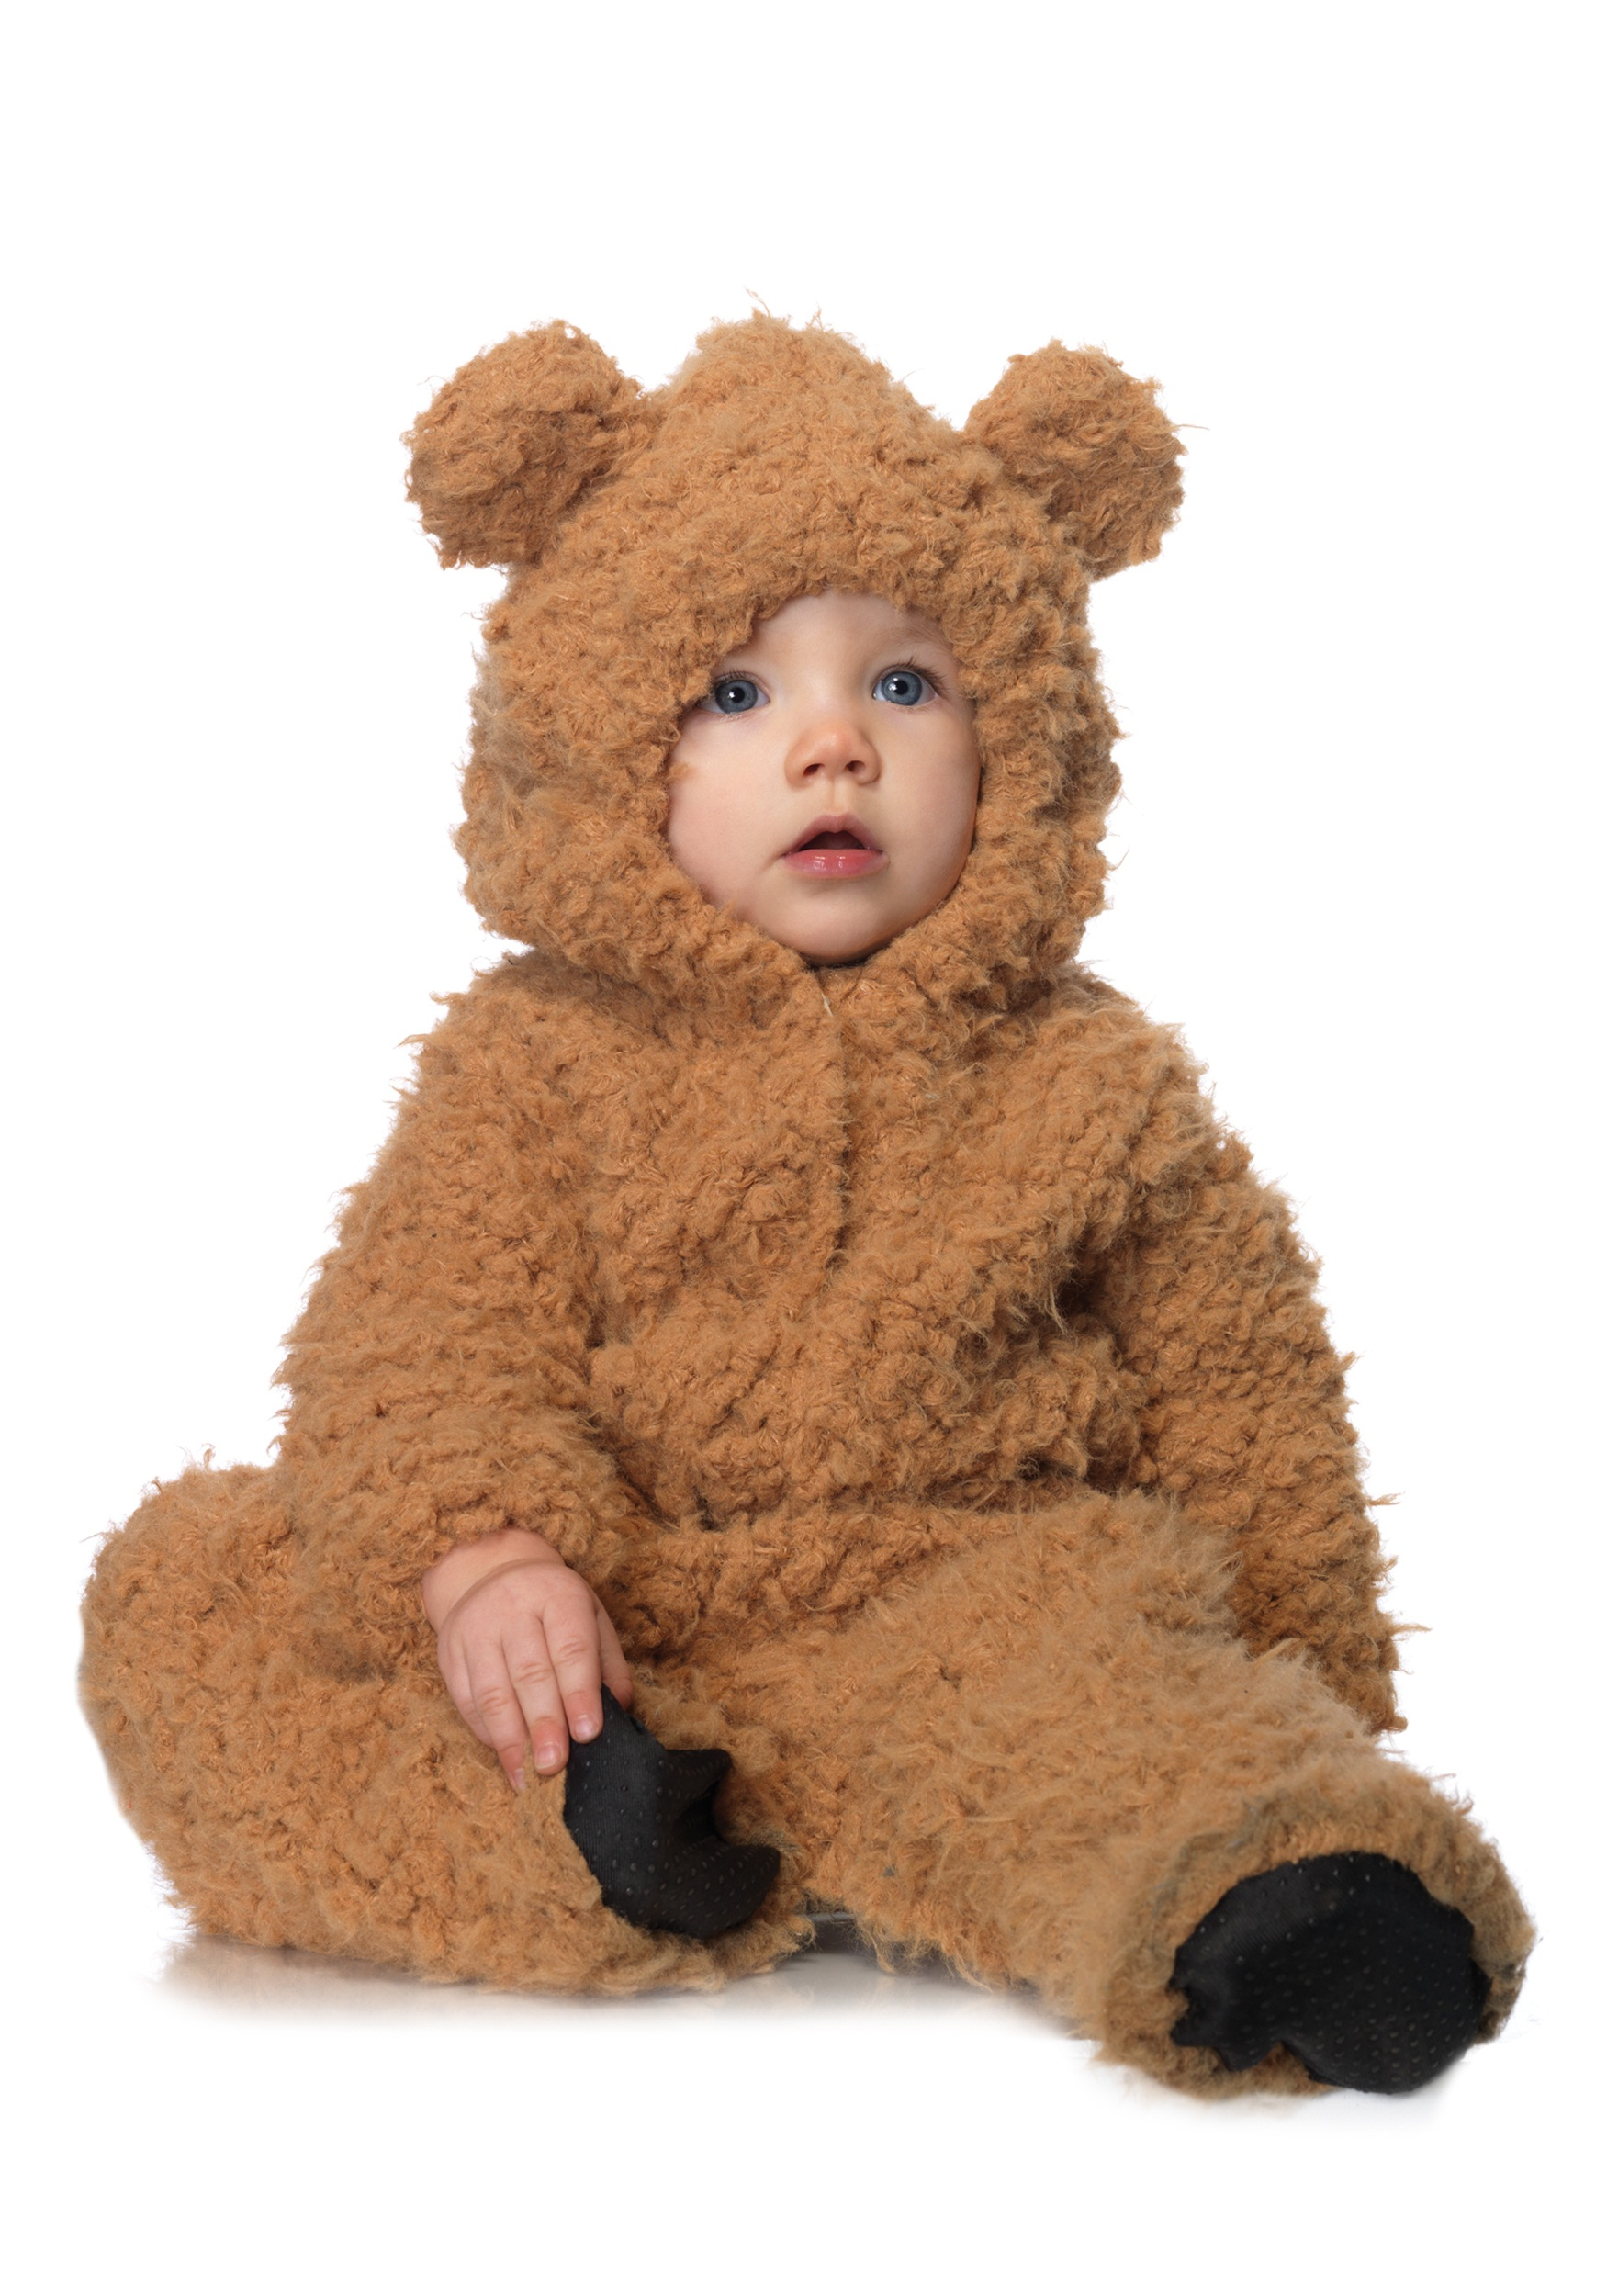 -Baby boy adorable sweat suit with bear hoodie-Features a cute bear face and ears on the hoodie-Comes in three color combinations: blue and navy, khaki .